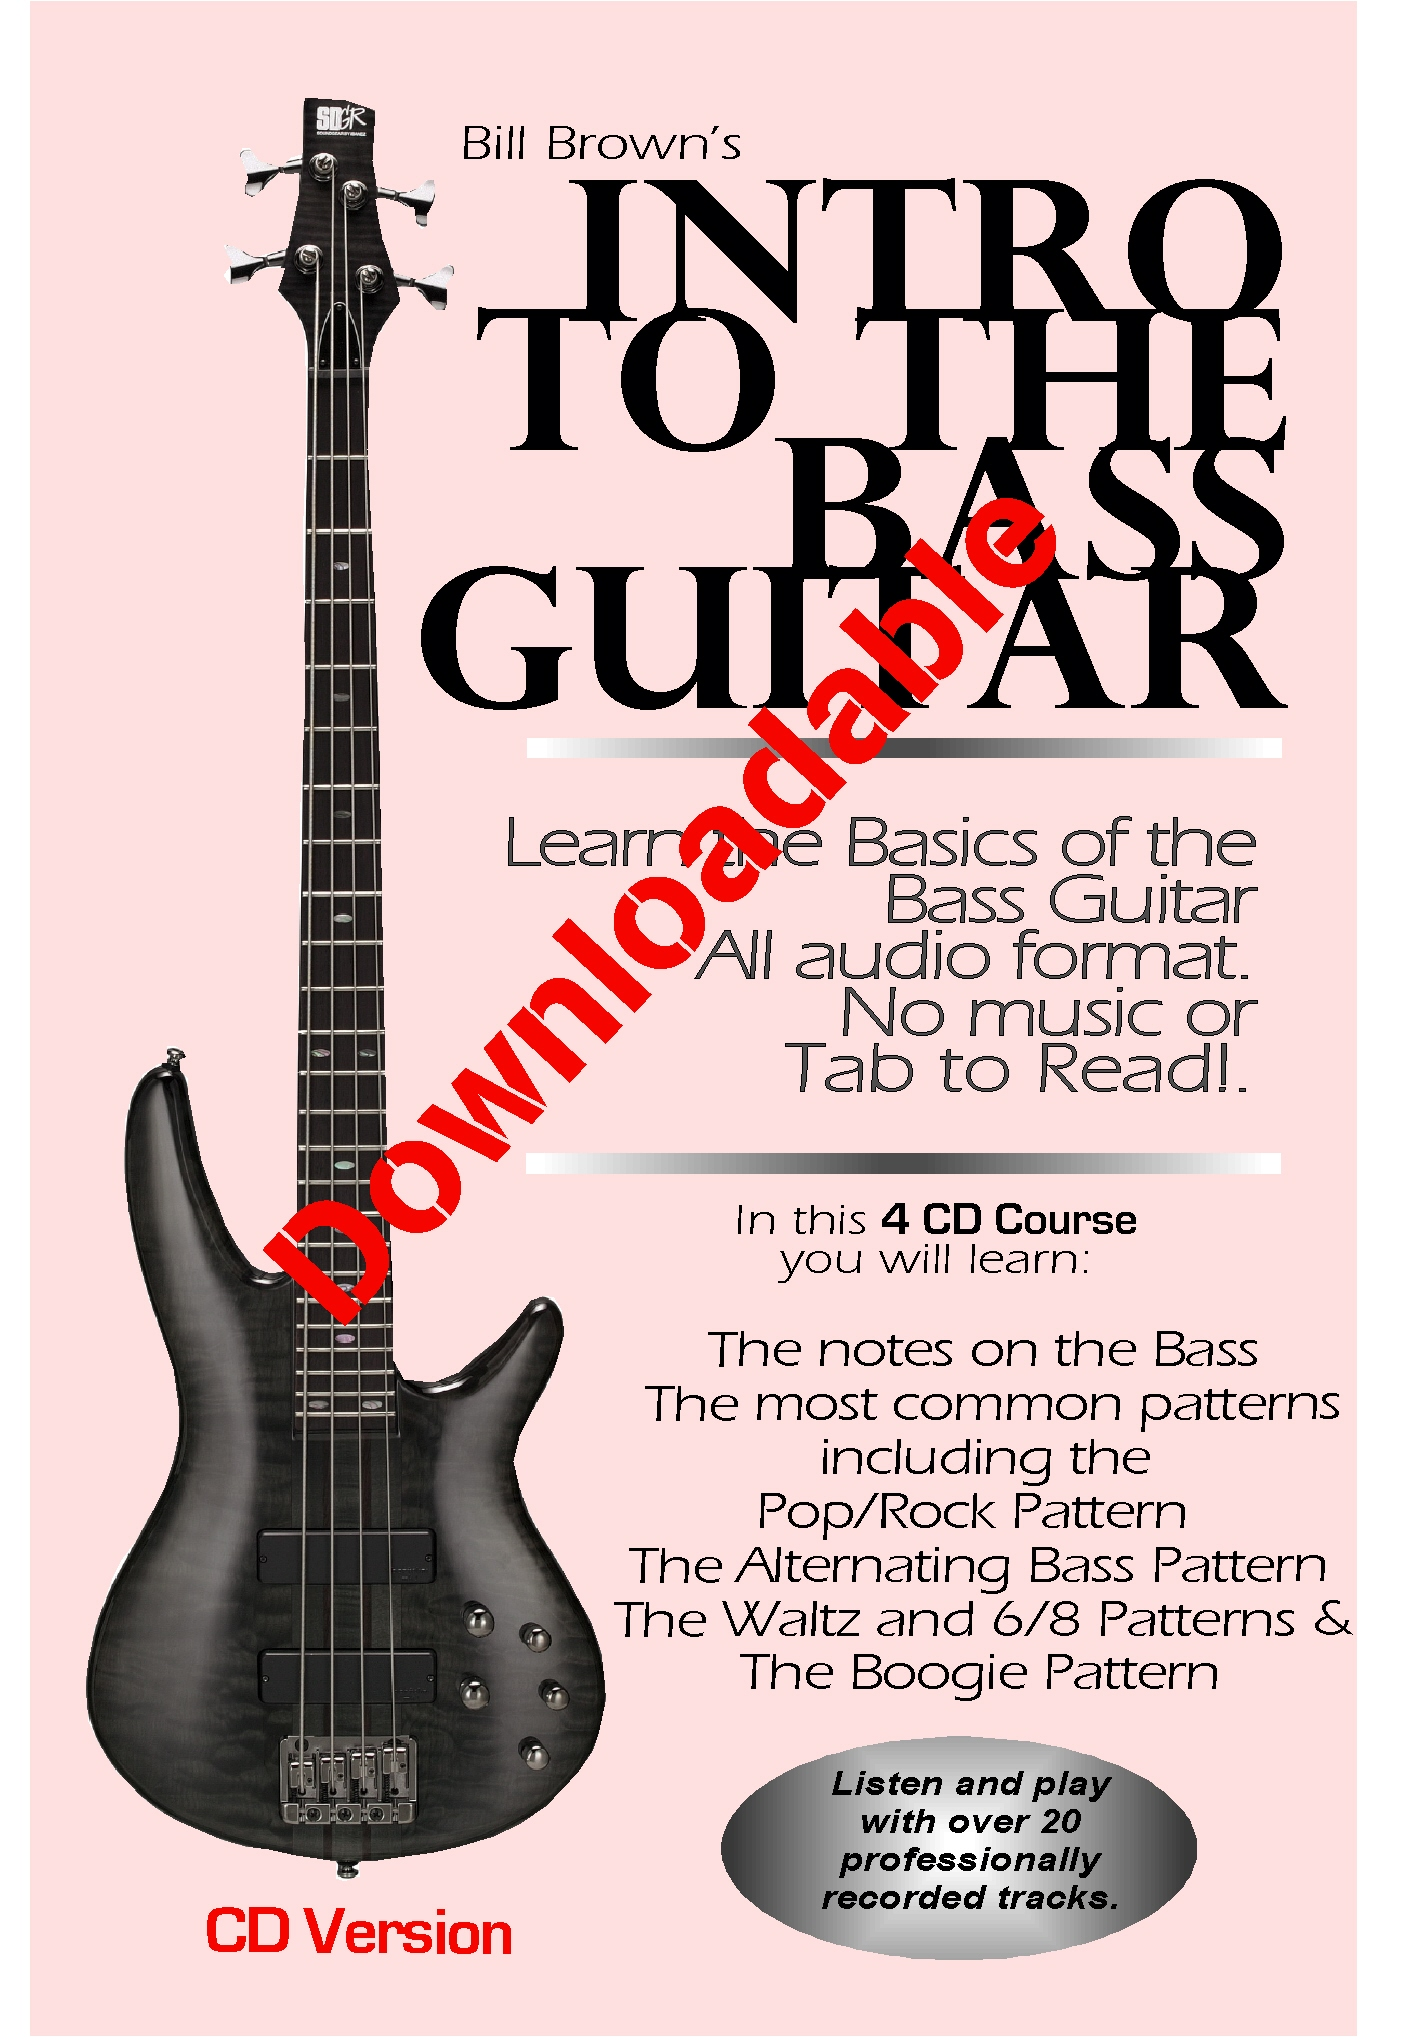 Intro to the Bass Guitar (Downloadable)